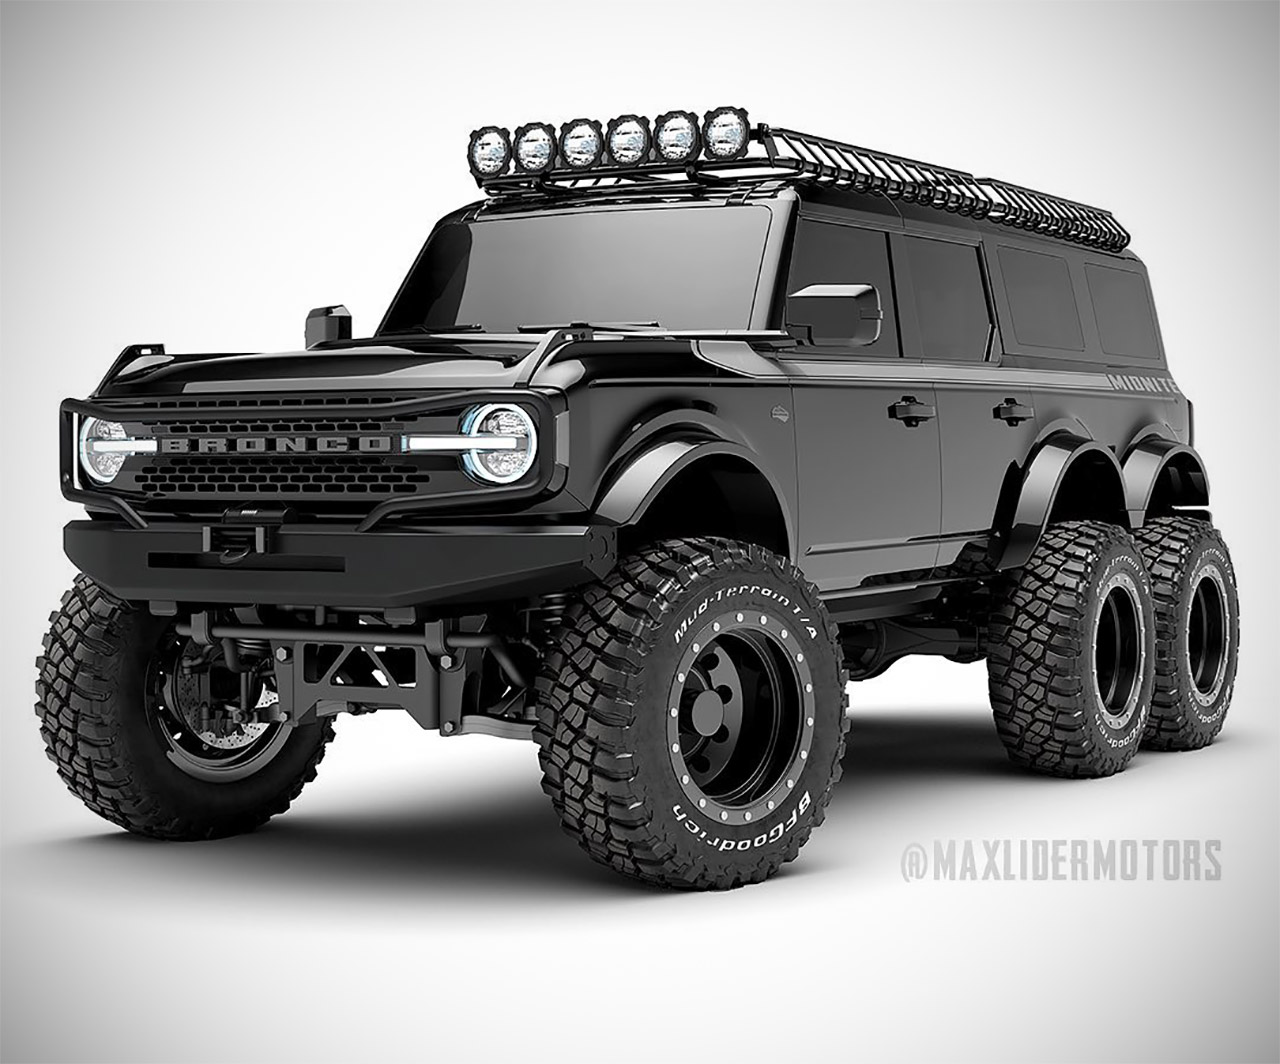 Maxlider Motors 6x6 Ford Bronco